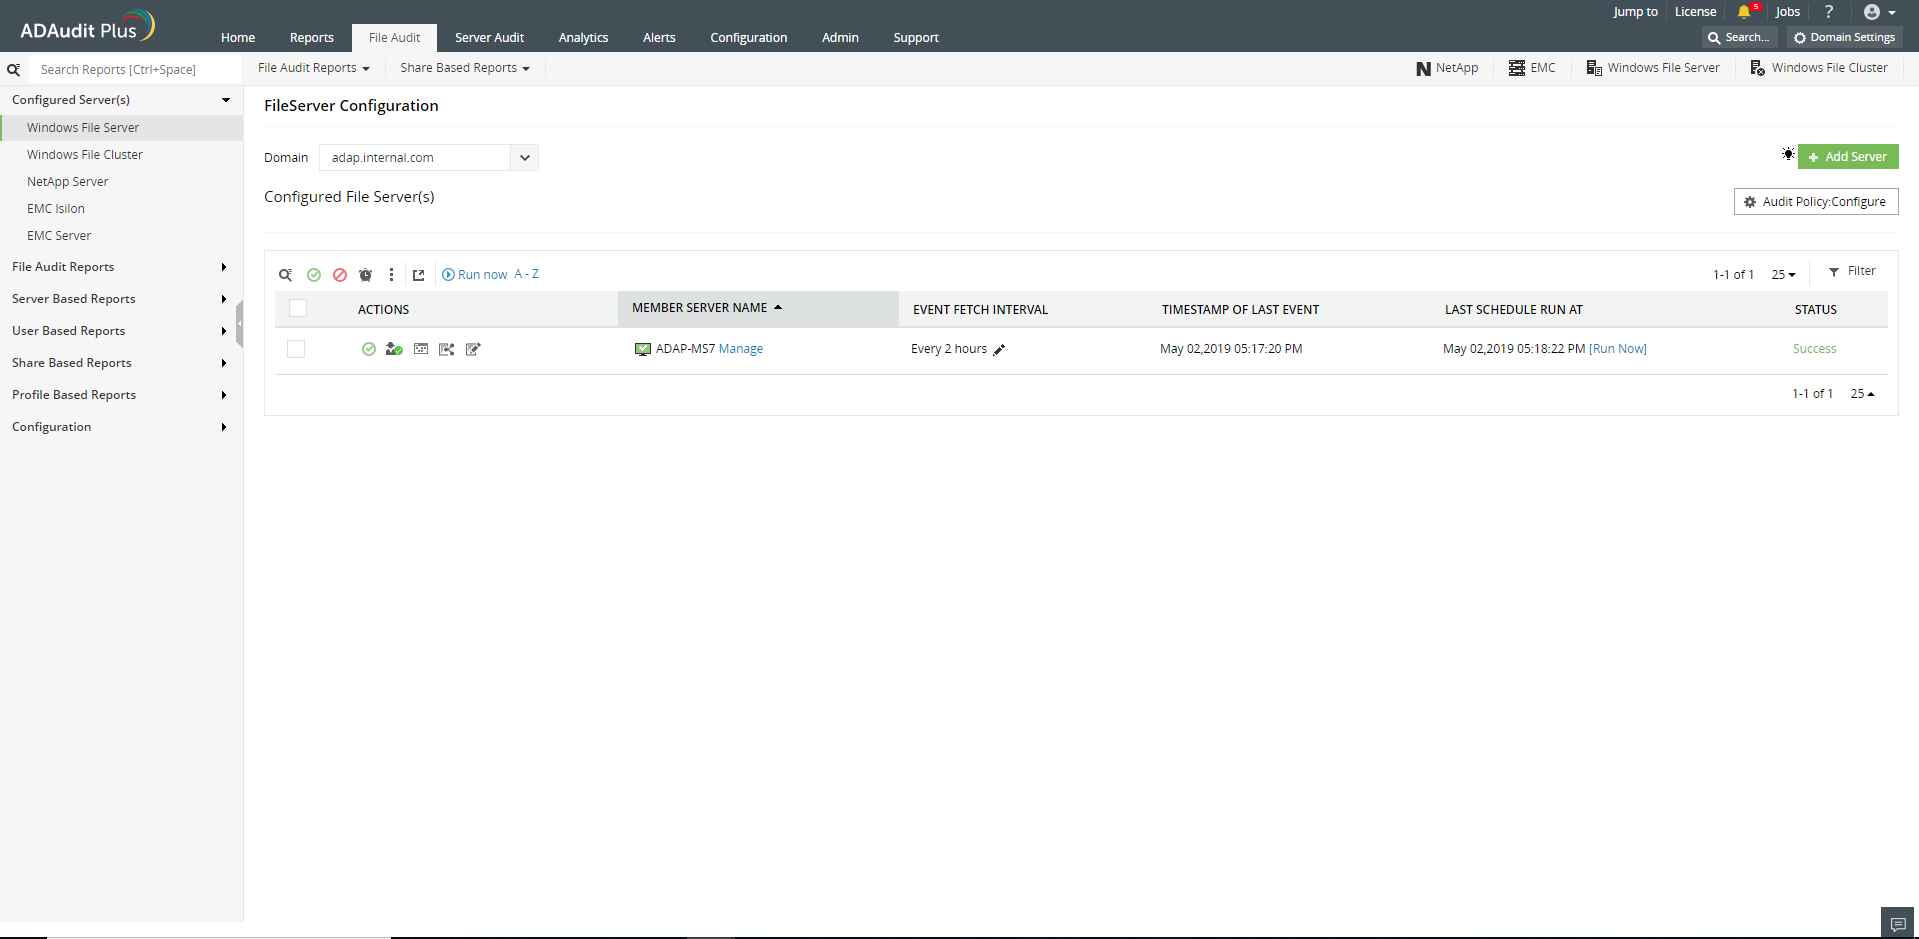 Manage Agent page